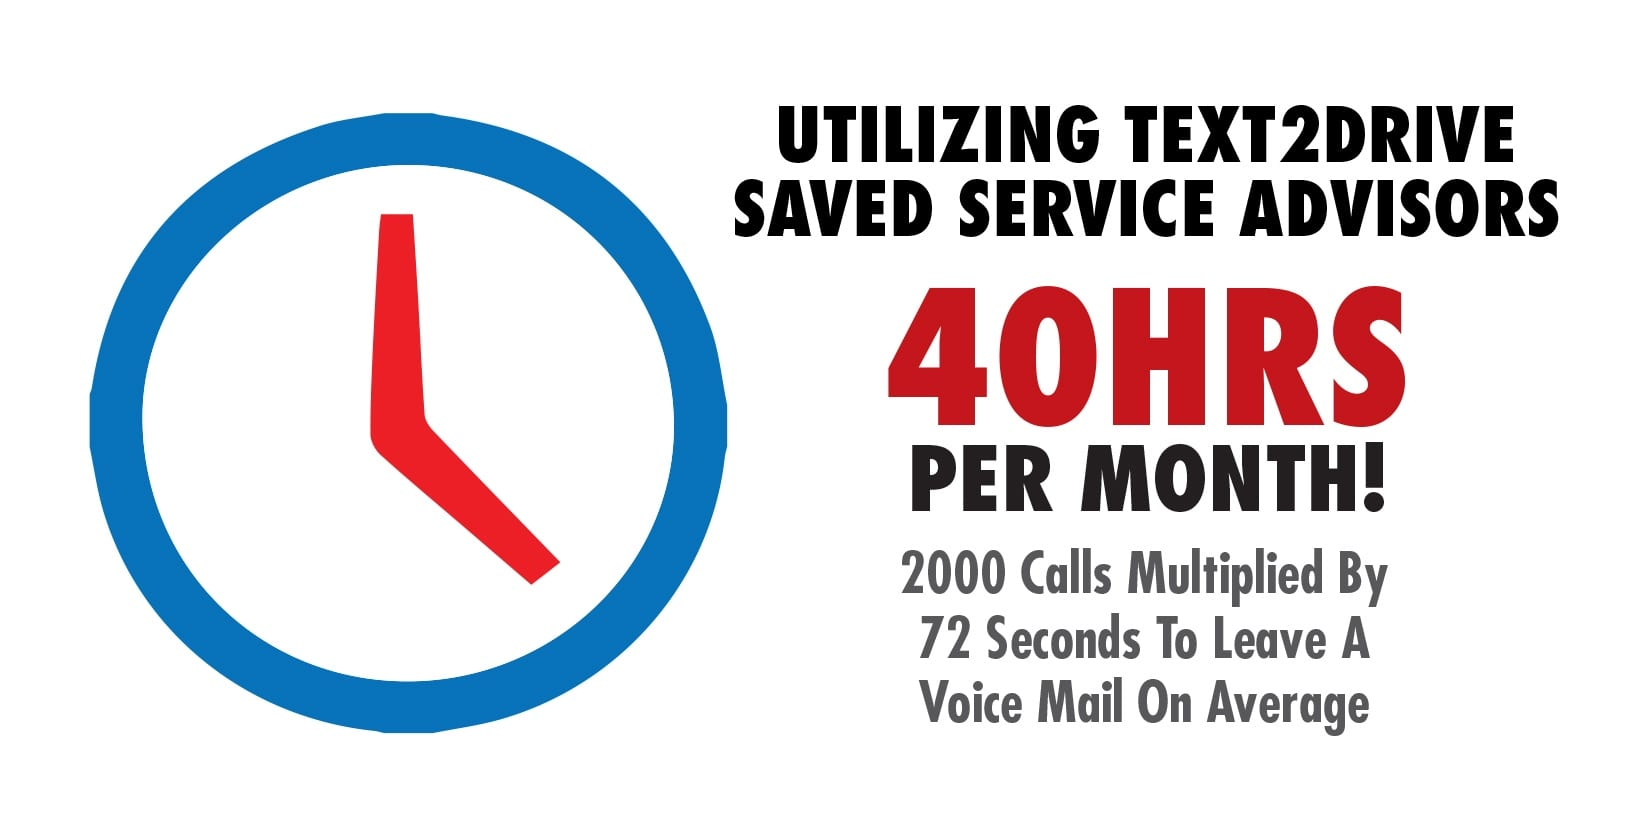 Utilizing Text2Drive Saved Service Advisors 40 Hours Per Month